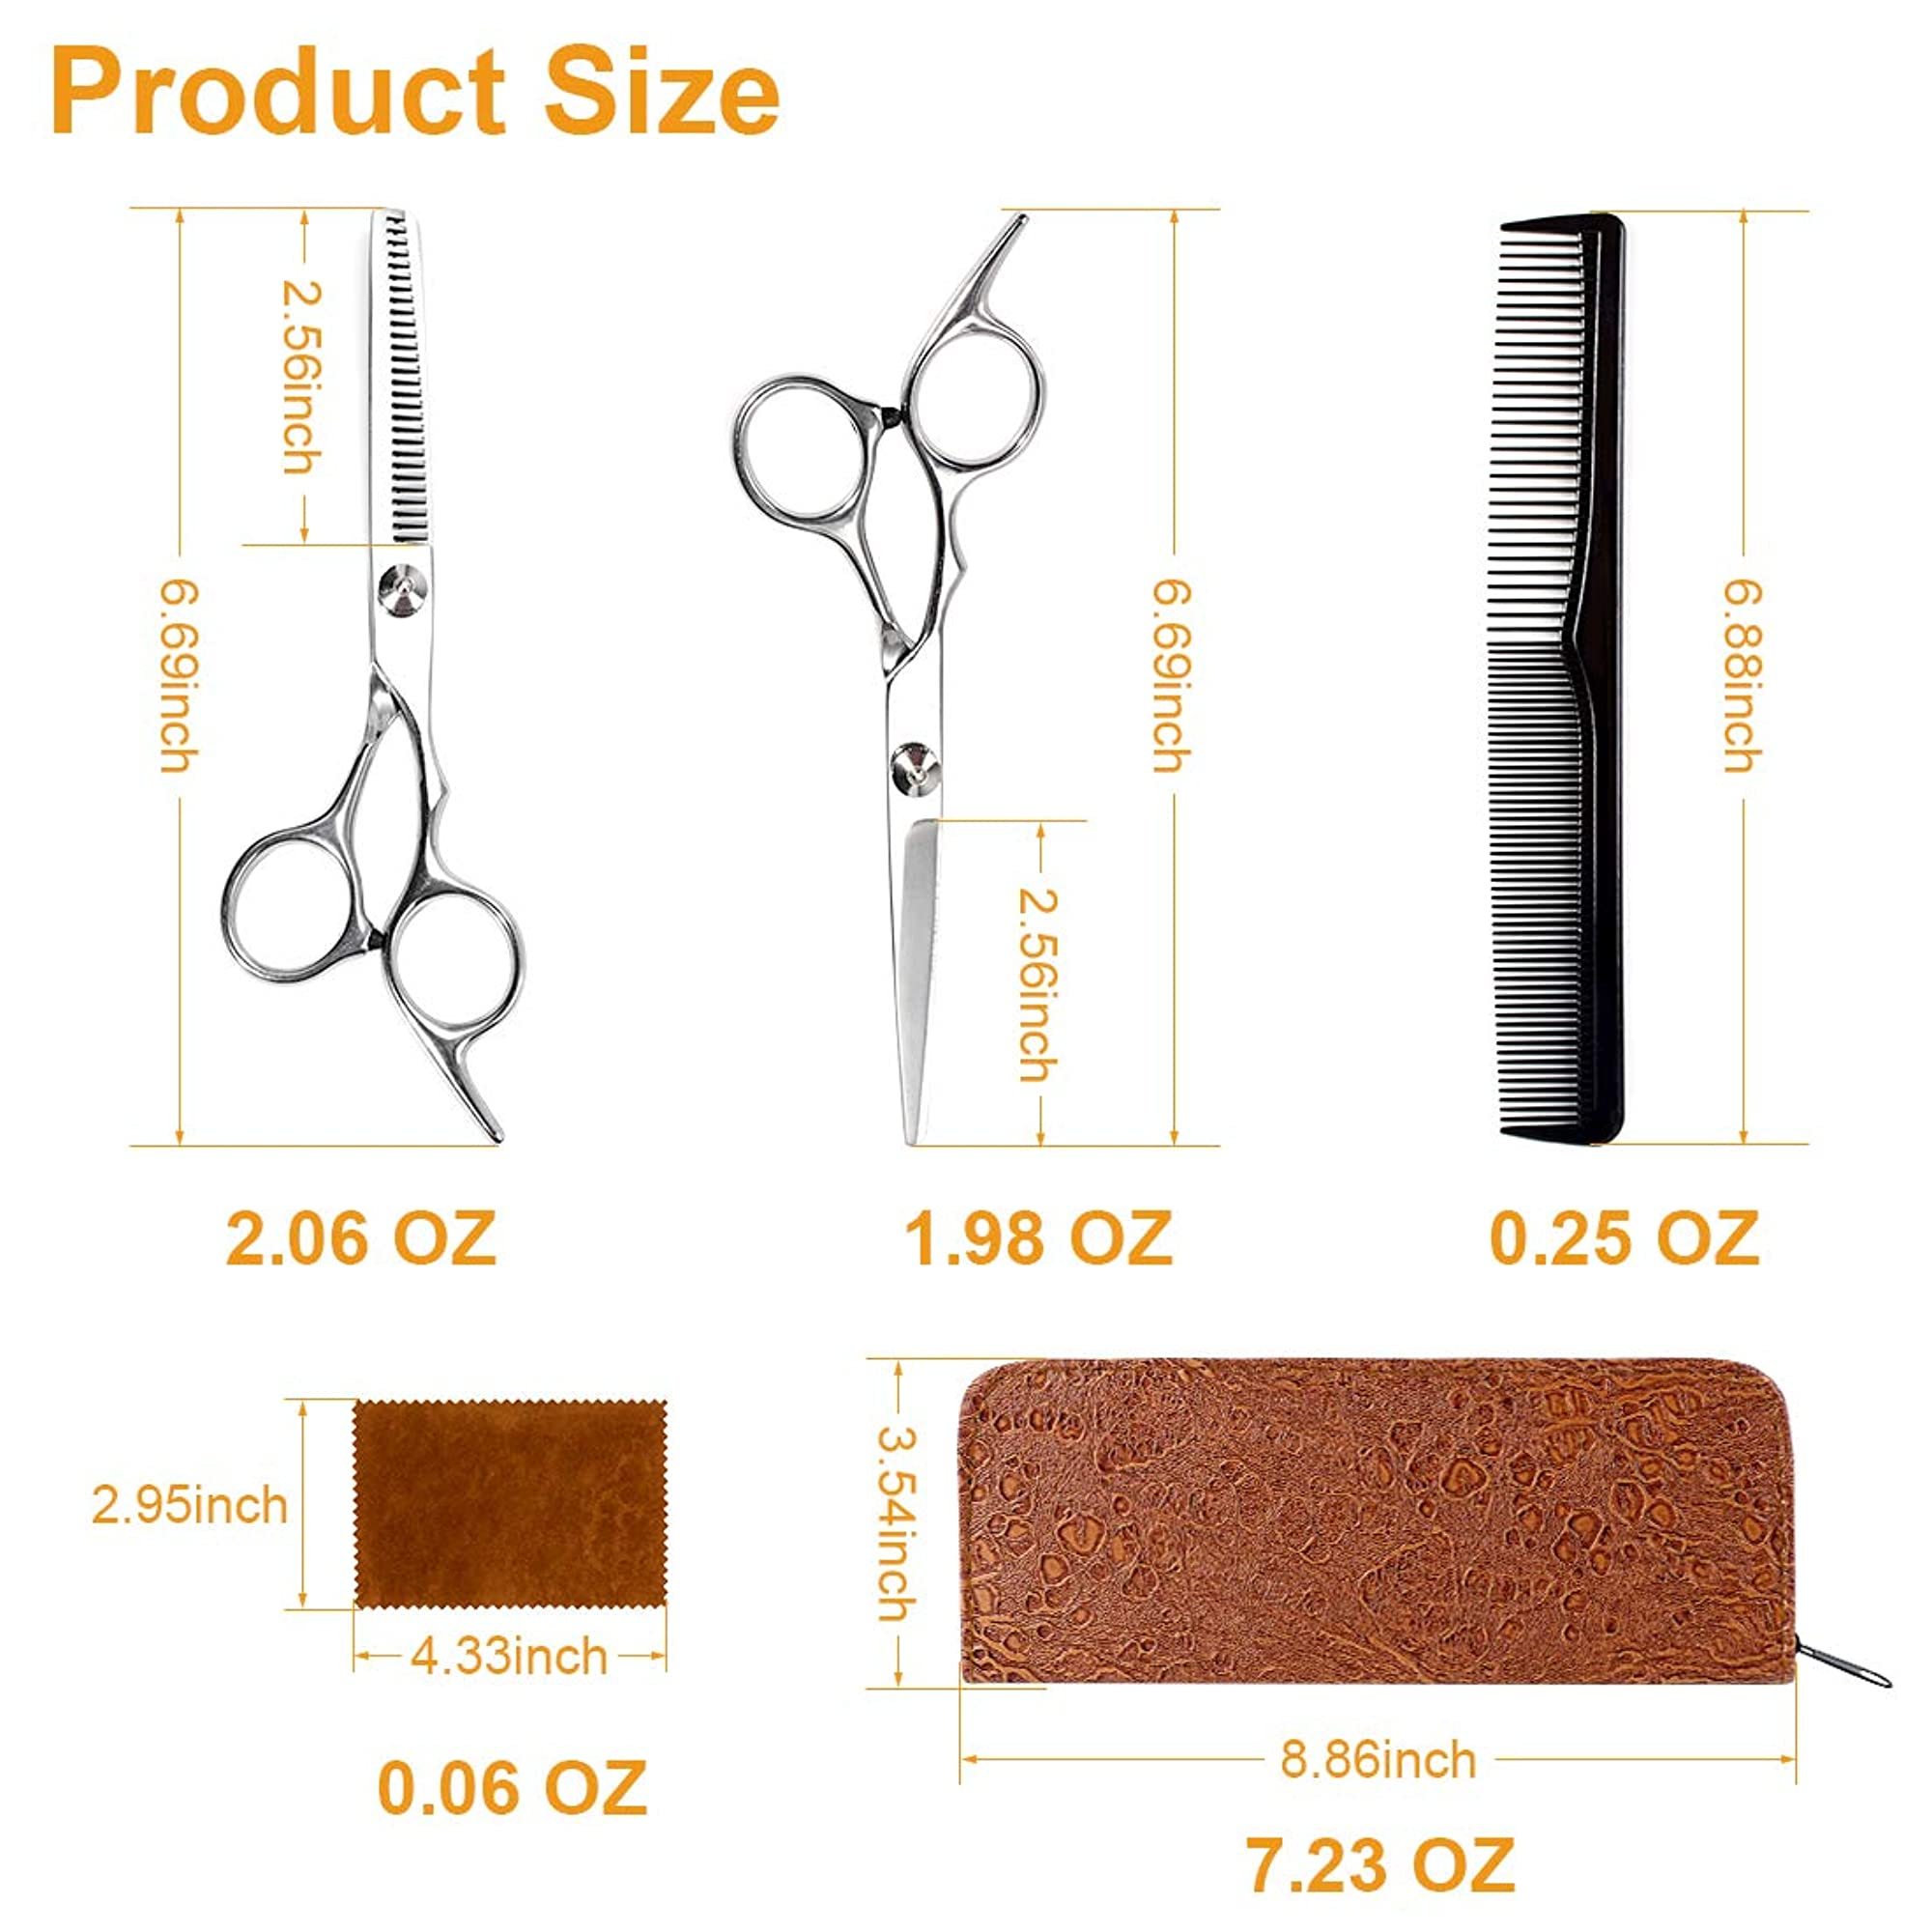 Hairdressing Tool Set With Scissors, Comb, And Leather Case